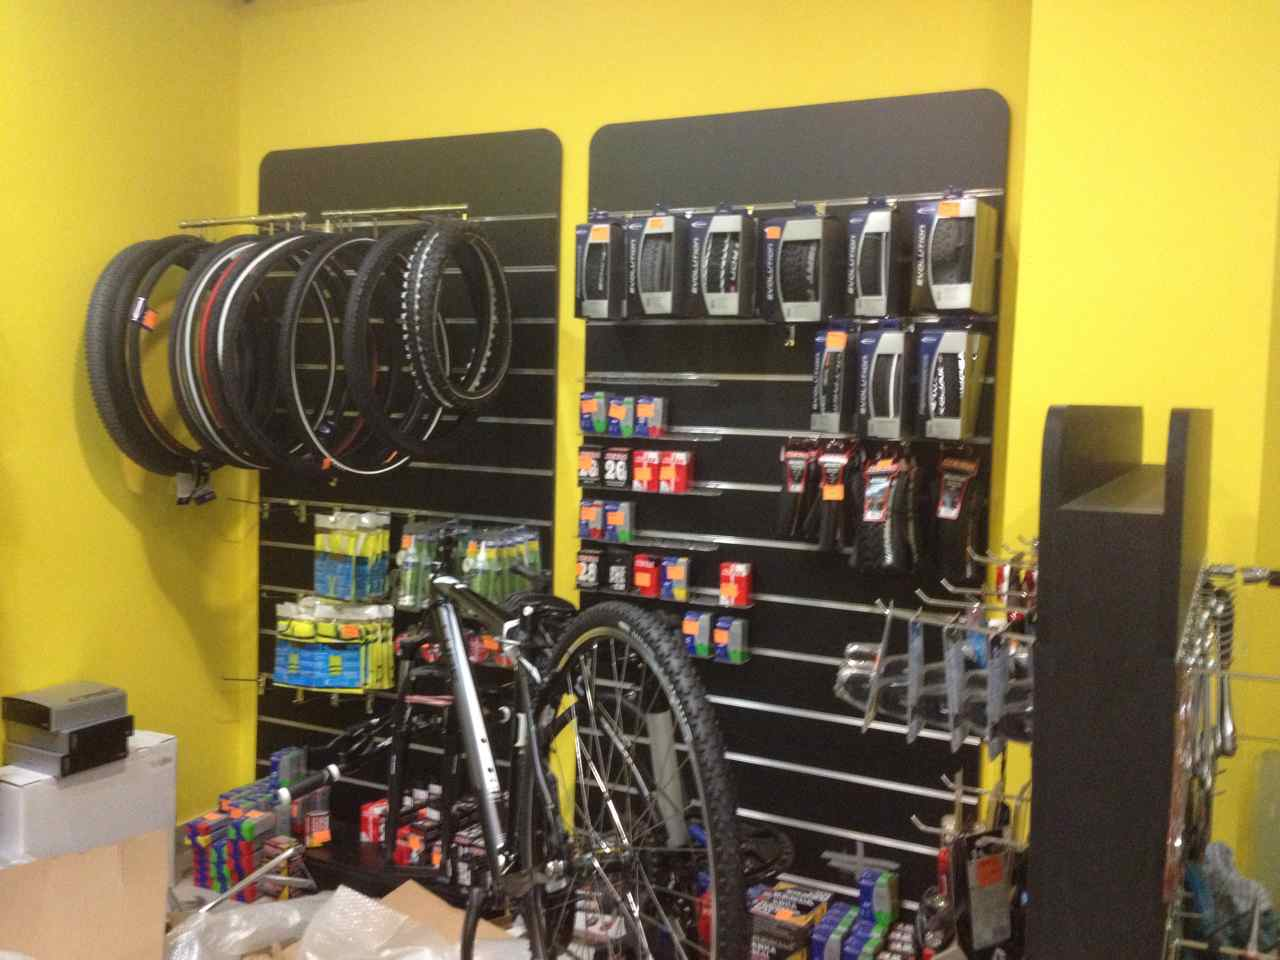 When cycle touring in far away countries it is a dream to visit a well stocked bike shop